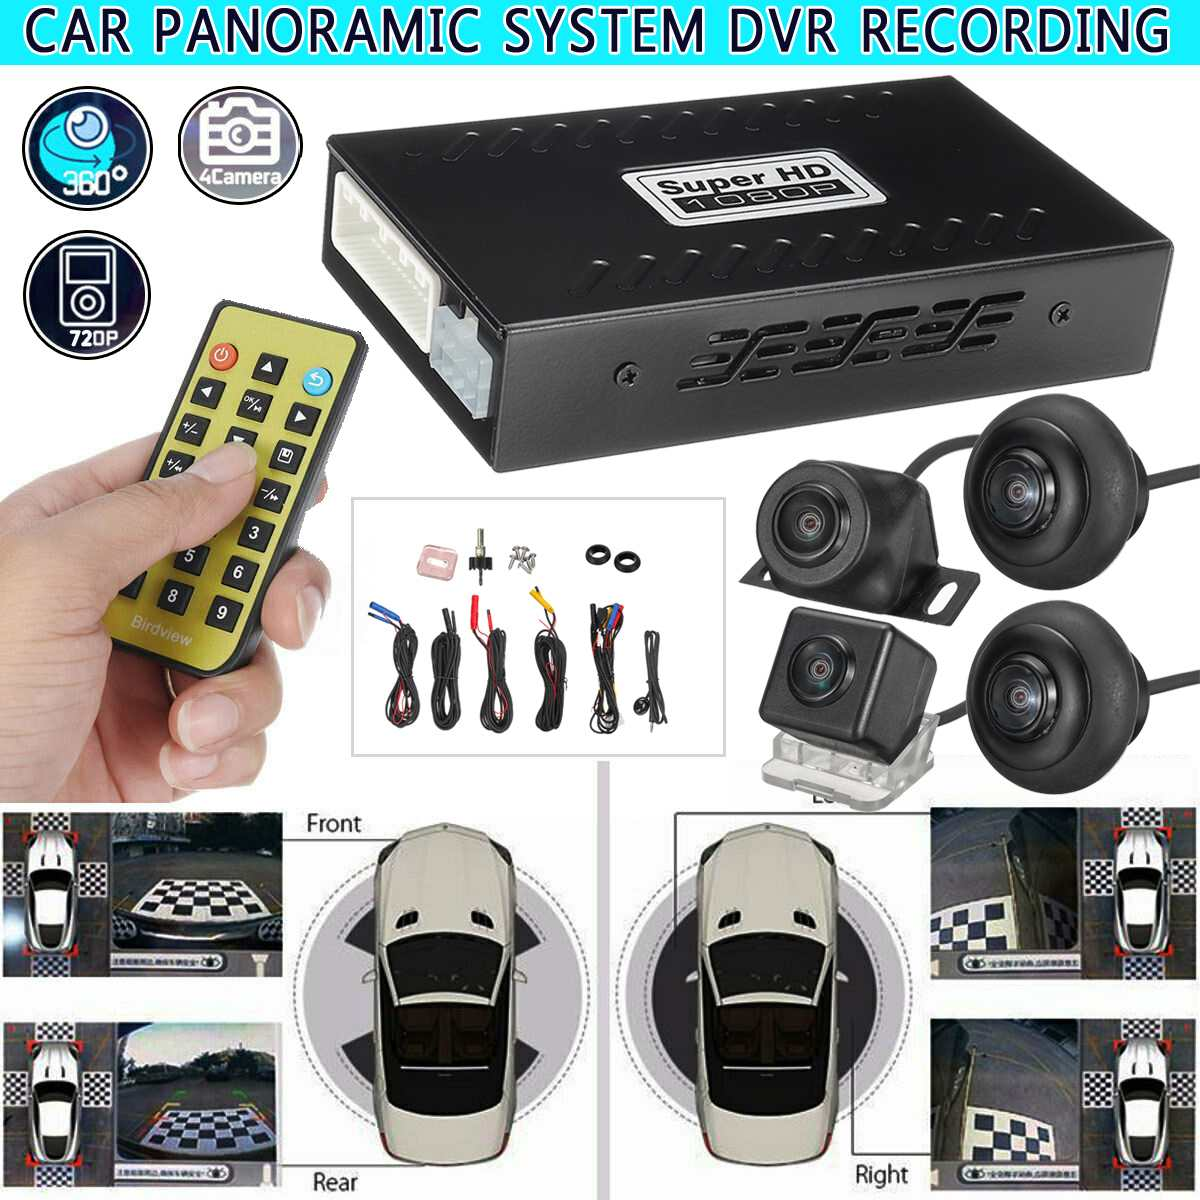 Dvr-System Car-Dvr-Recorder Car-Surround-View-System Panorama Parking-Assistance Auto-Bird-View title=